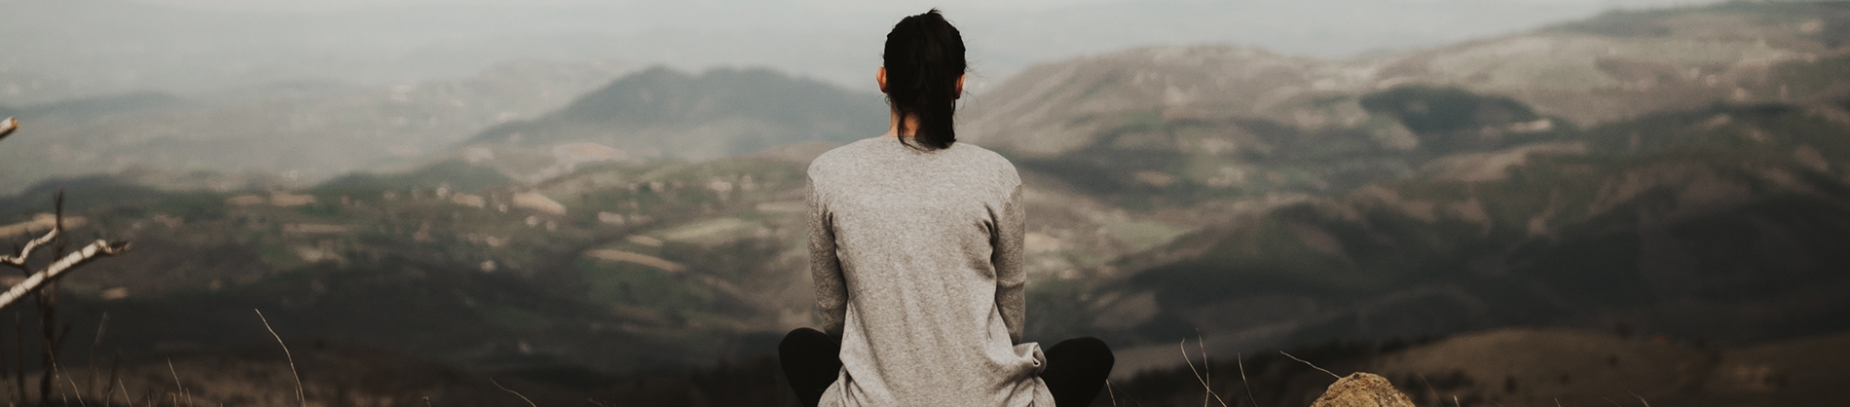 A women sat looking out over a mountain landscape